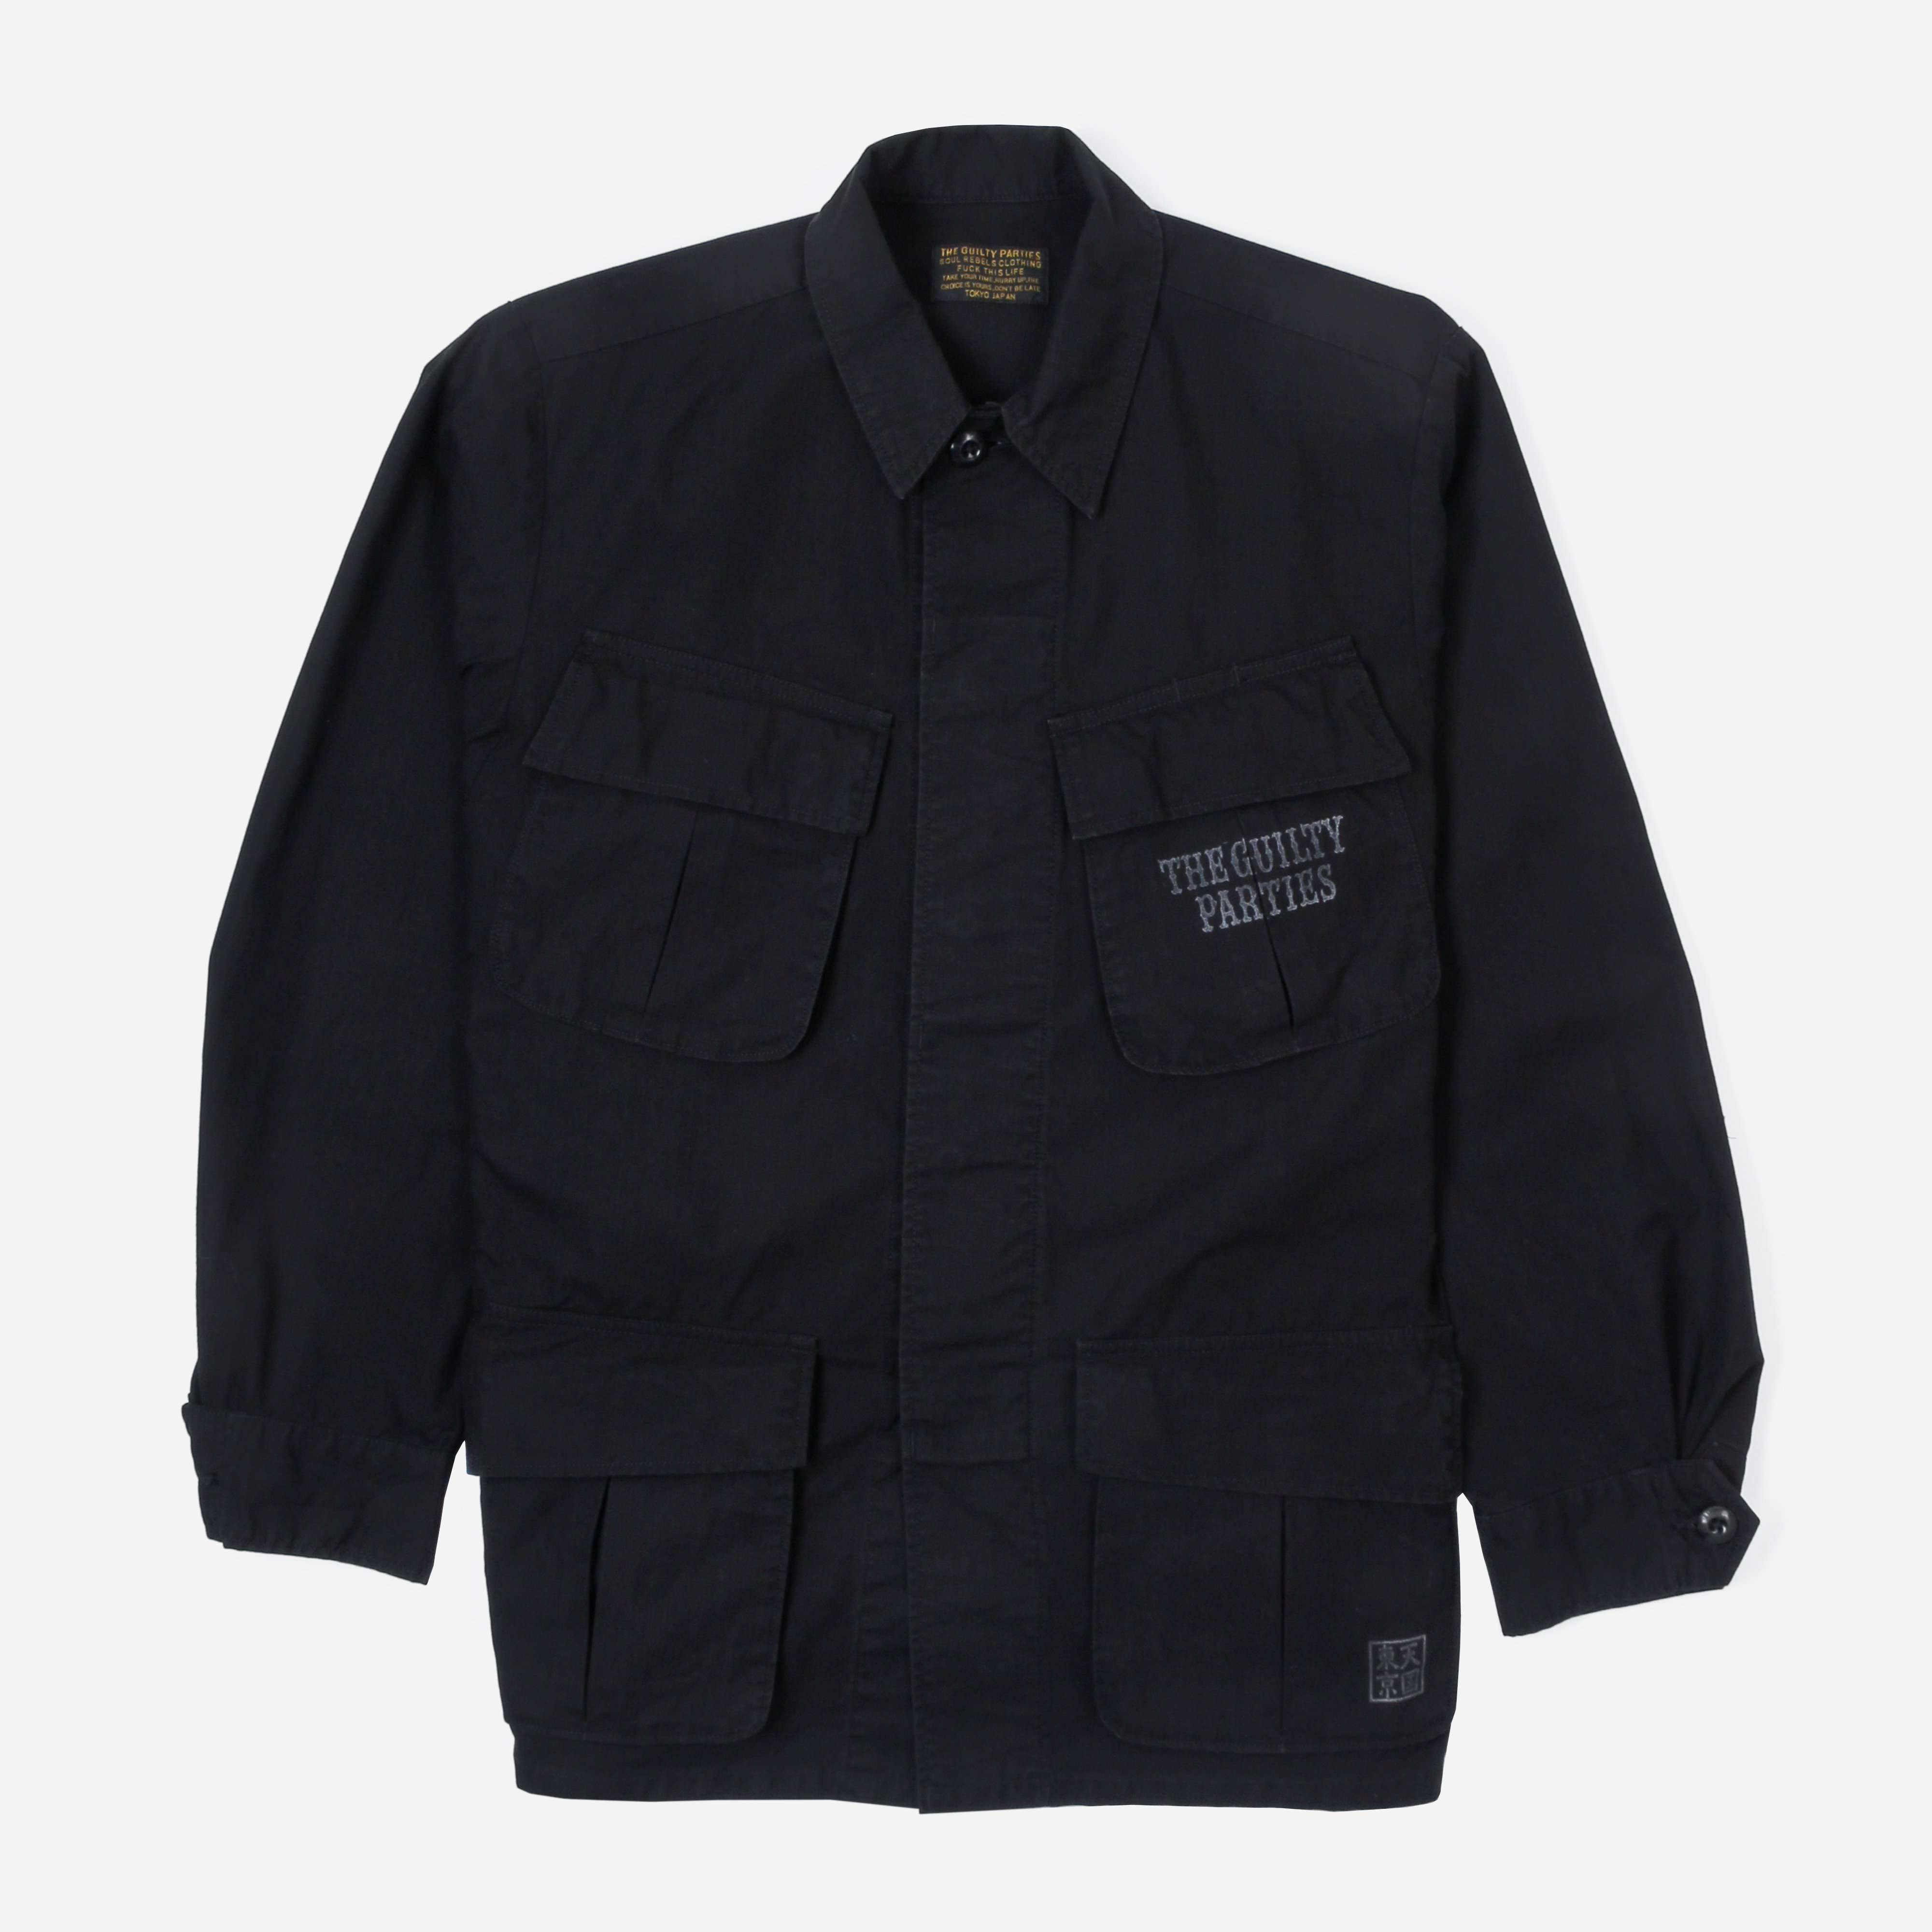 Wacko Maria Fatigue  Jacket Type 2